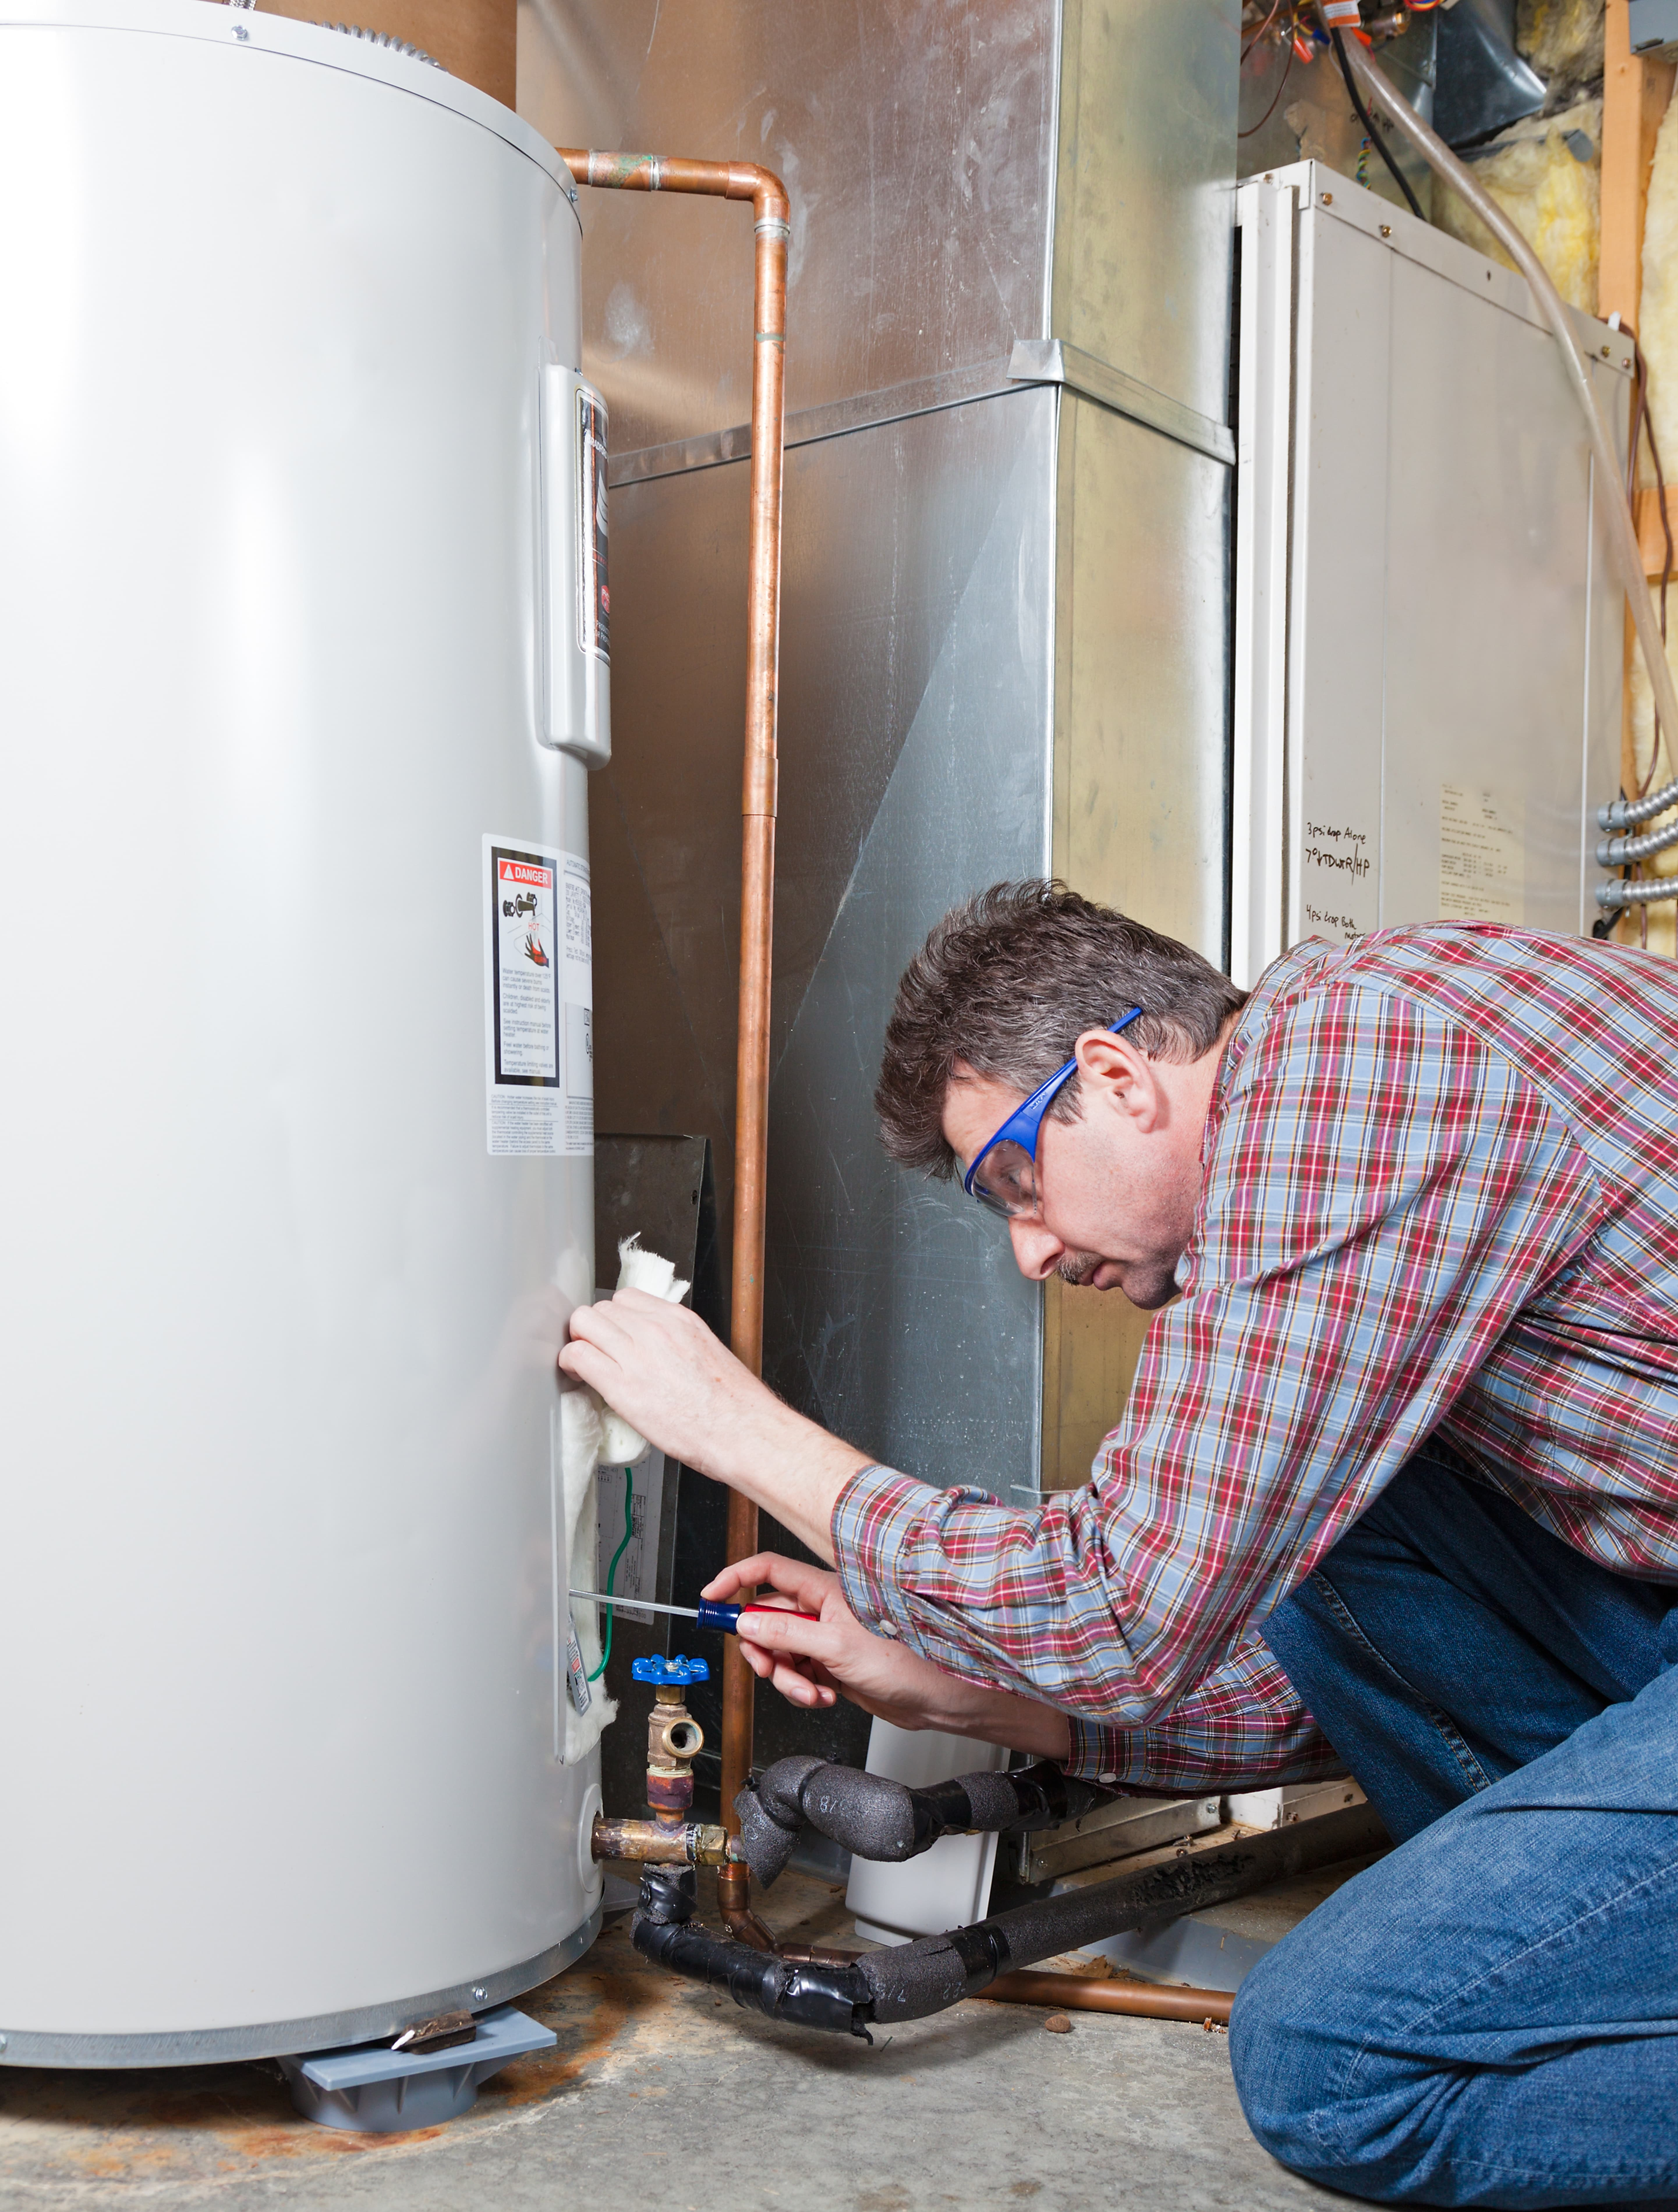 My Water Heater Is Leaking! What Should I Do?